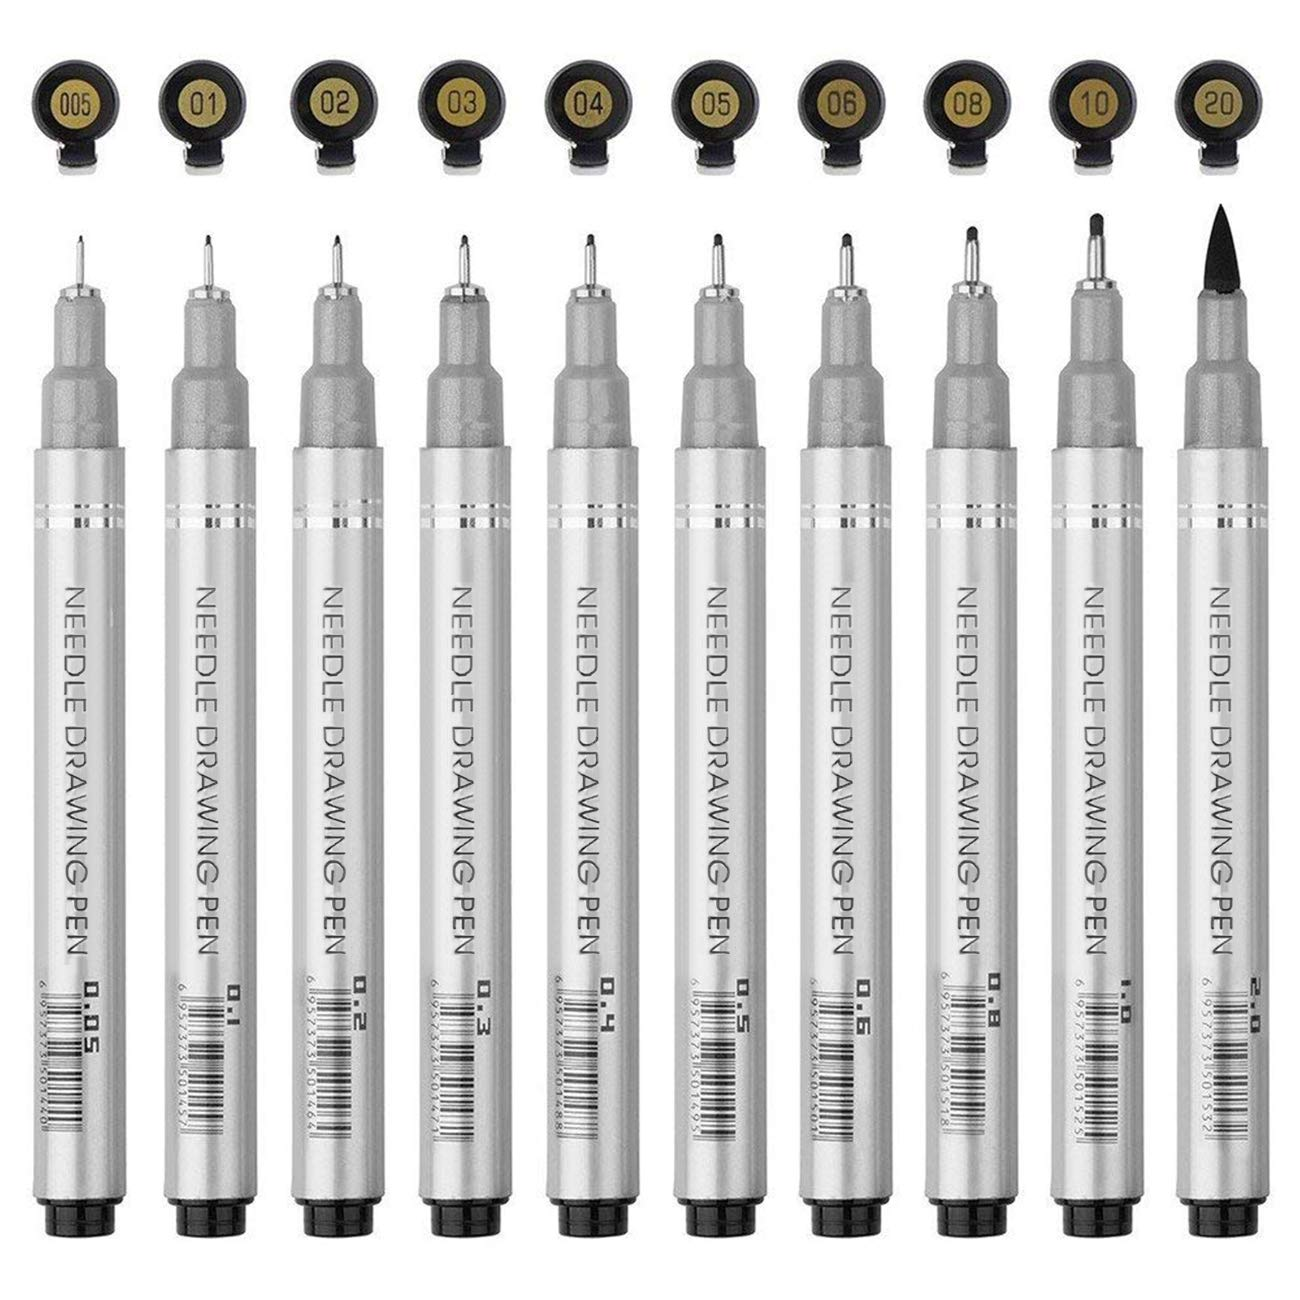 Magicdo Black Micro-Pen Fineliner Ink Pens, Micro Fine Point & Brush Tip Nibs Drawing Pens for Artist Illustration, Office Documents, Scrapbooking, Sketching, Technical Drawing, Set of 10